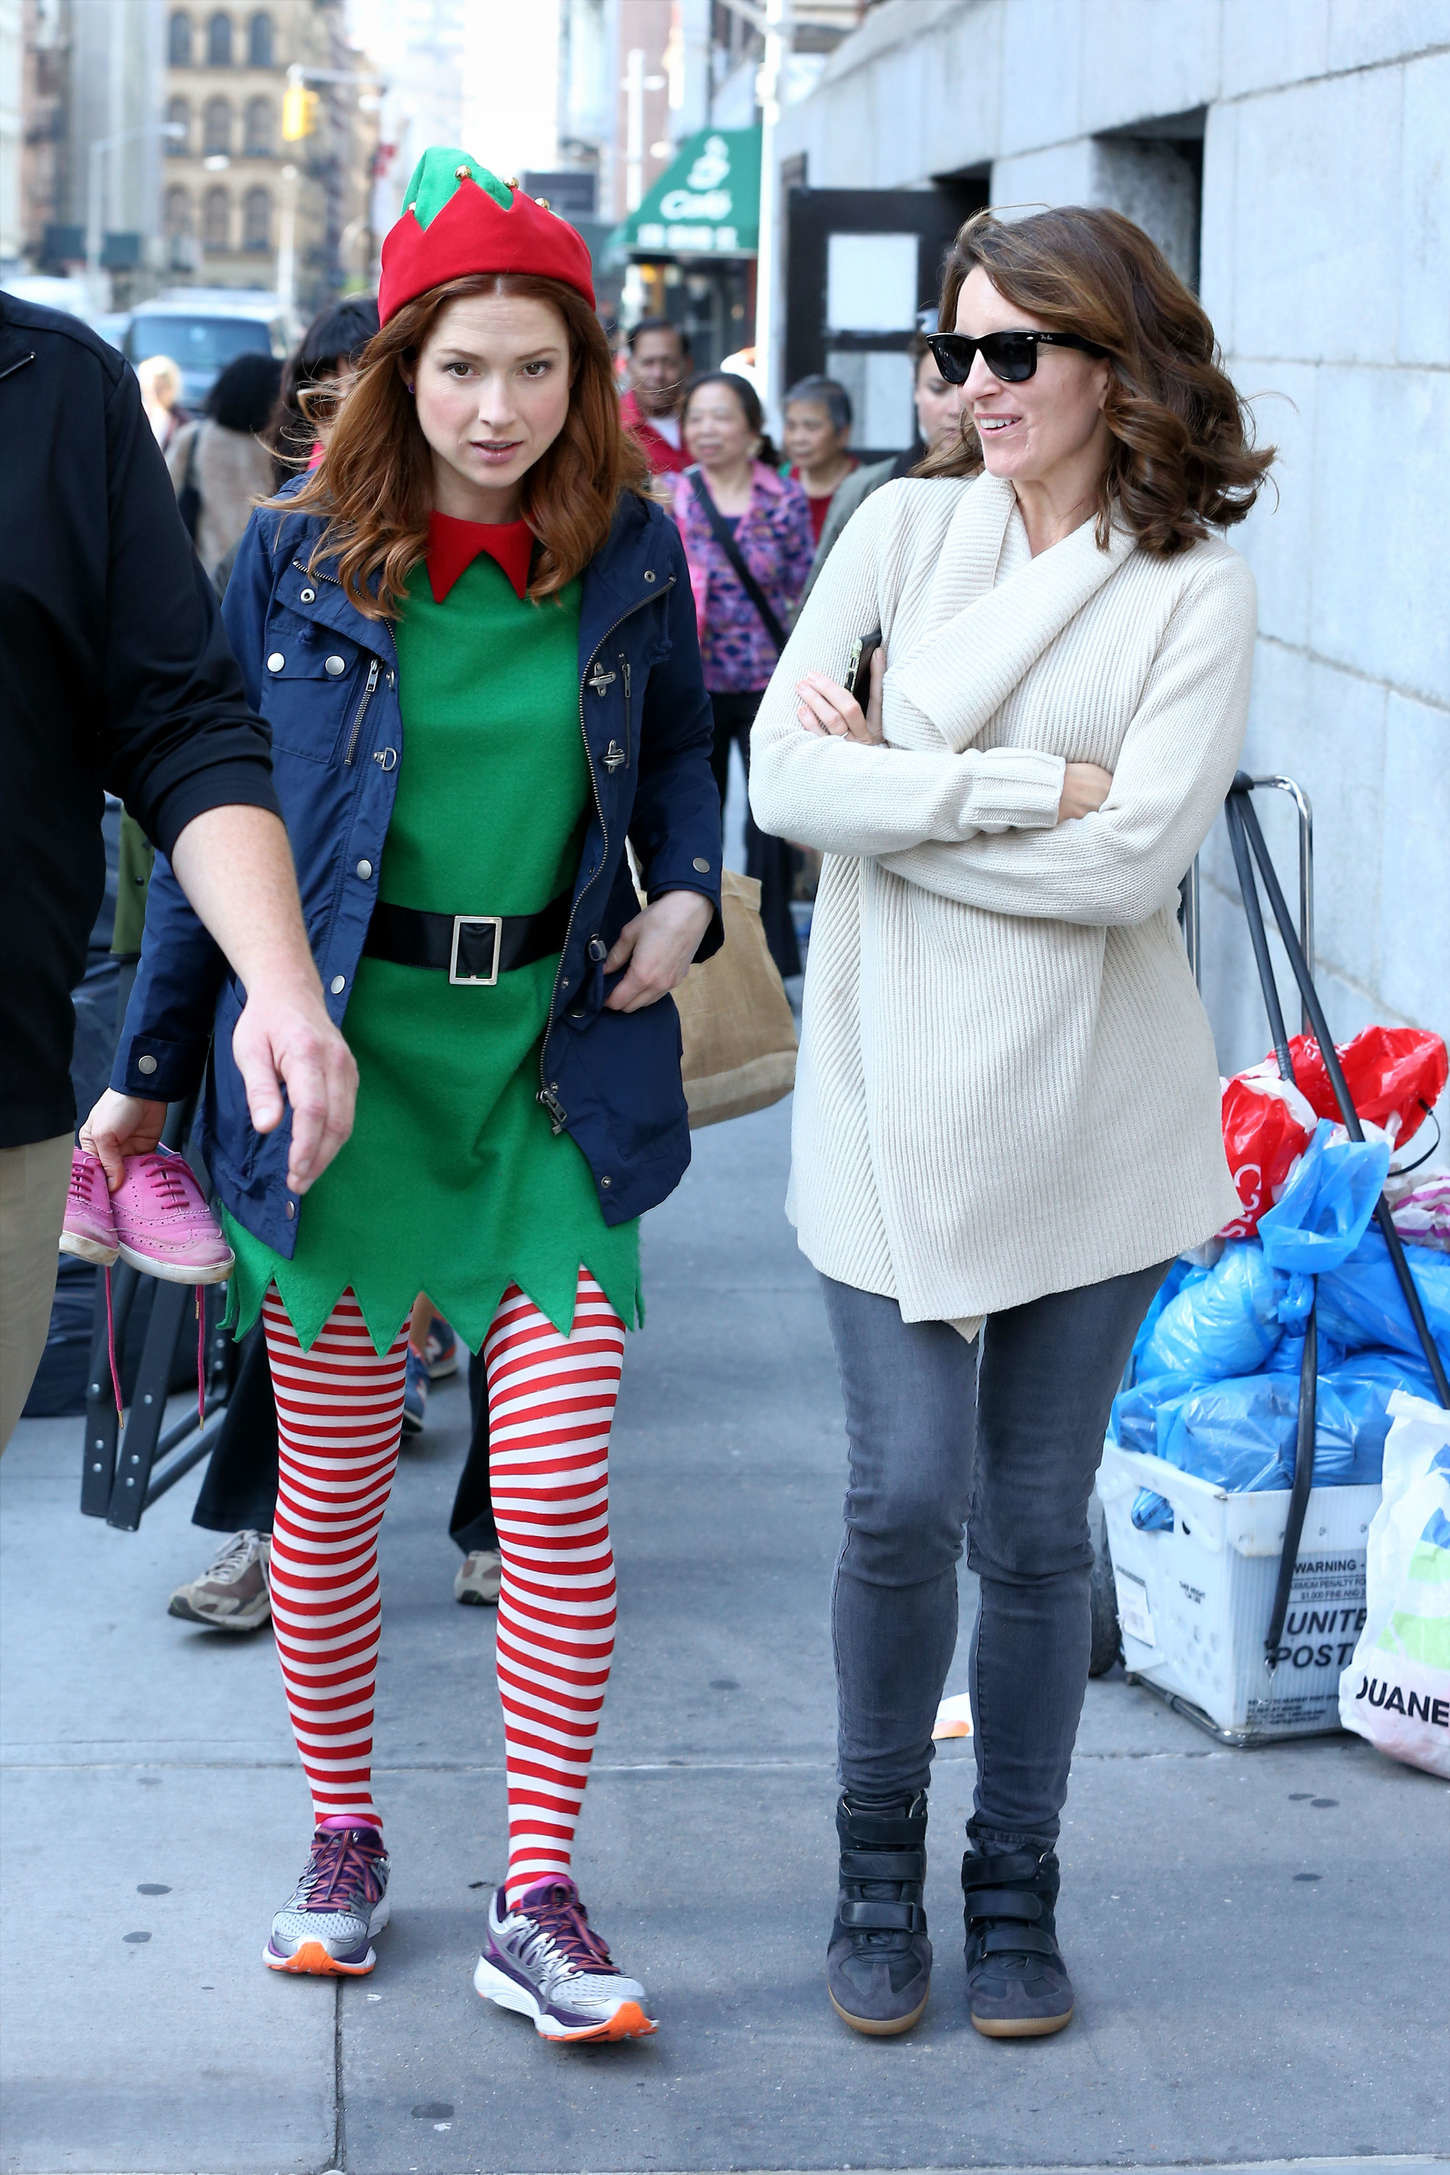 1450x2175 Ellie Kemper and Tina Fey on Unbreakable Kimmy Schmidt set -14 - Full Size